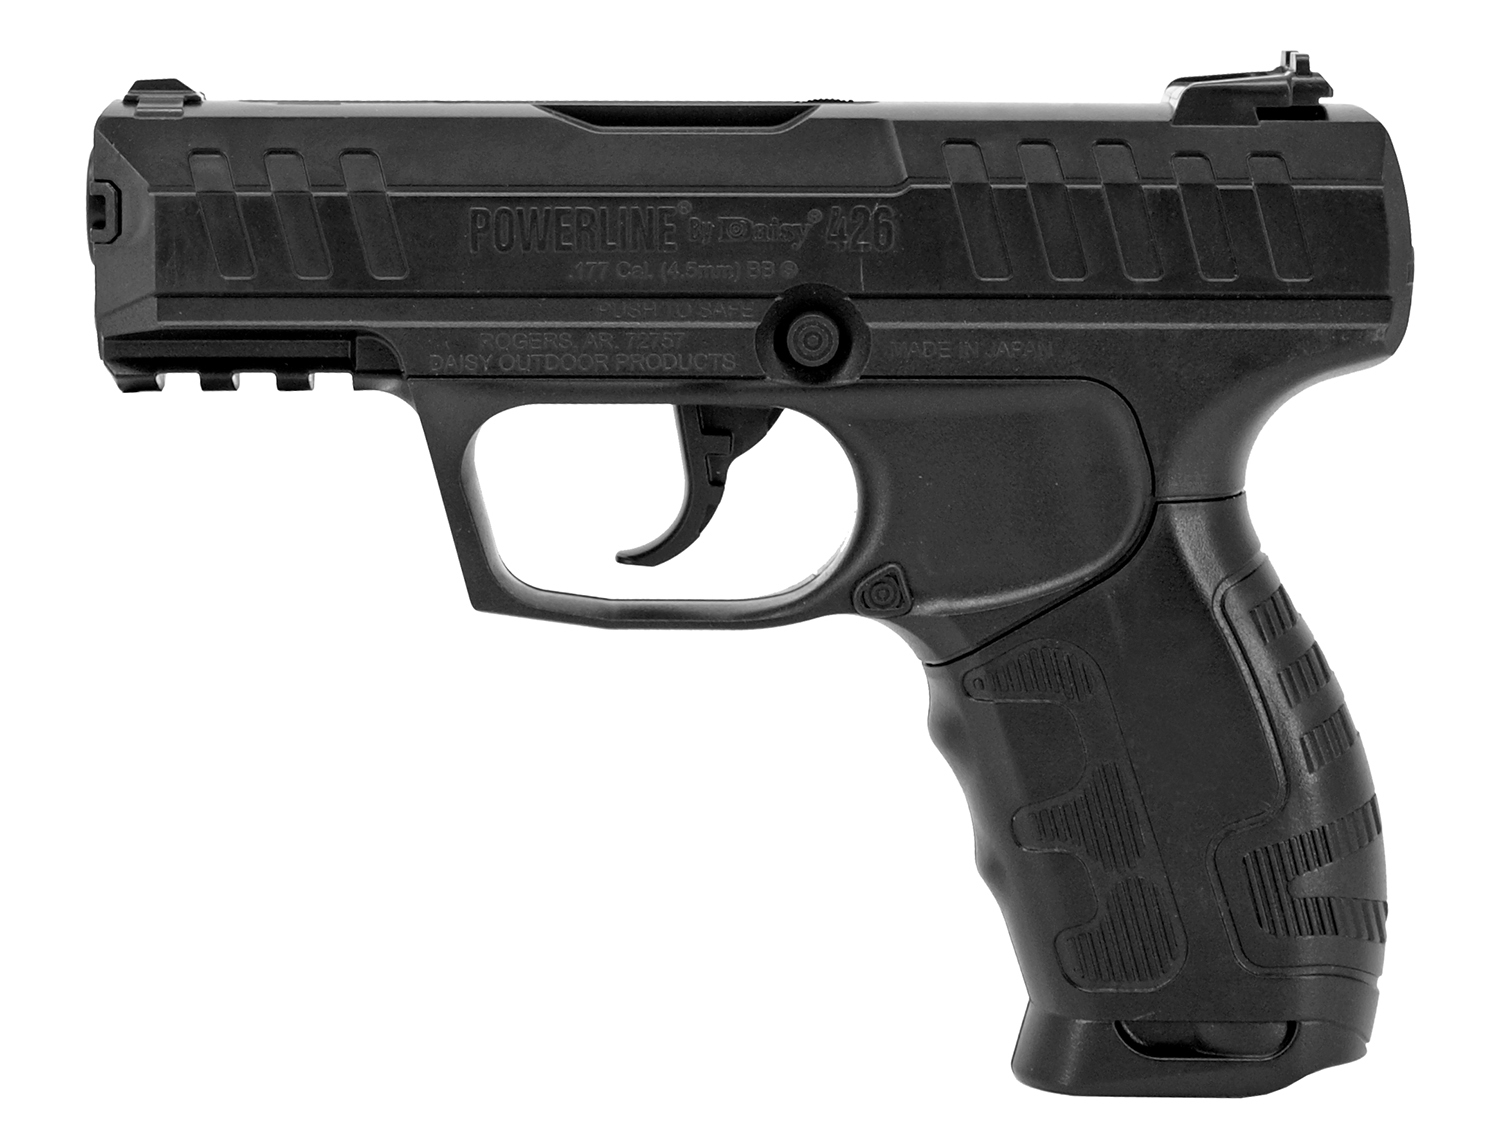 Daisy Powerline 426 BB Handgun - Refurbished